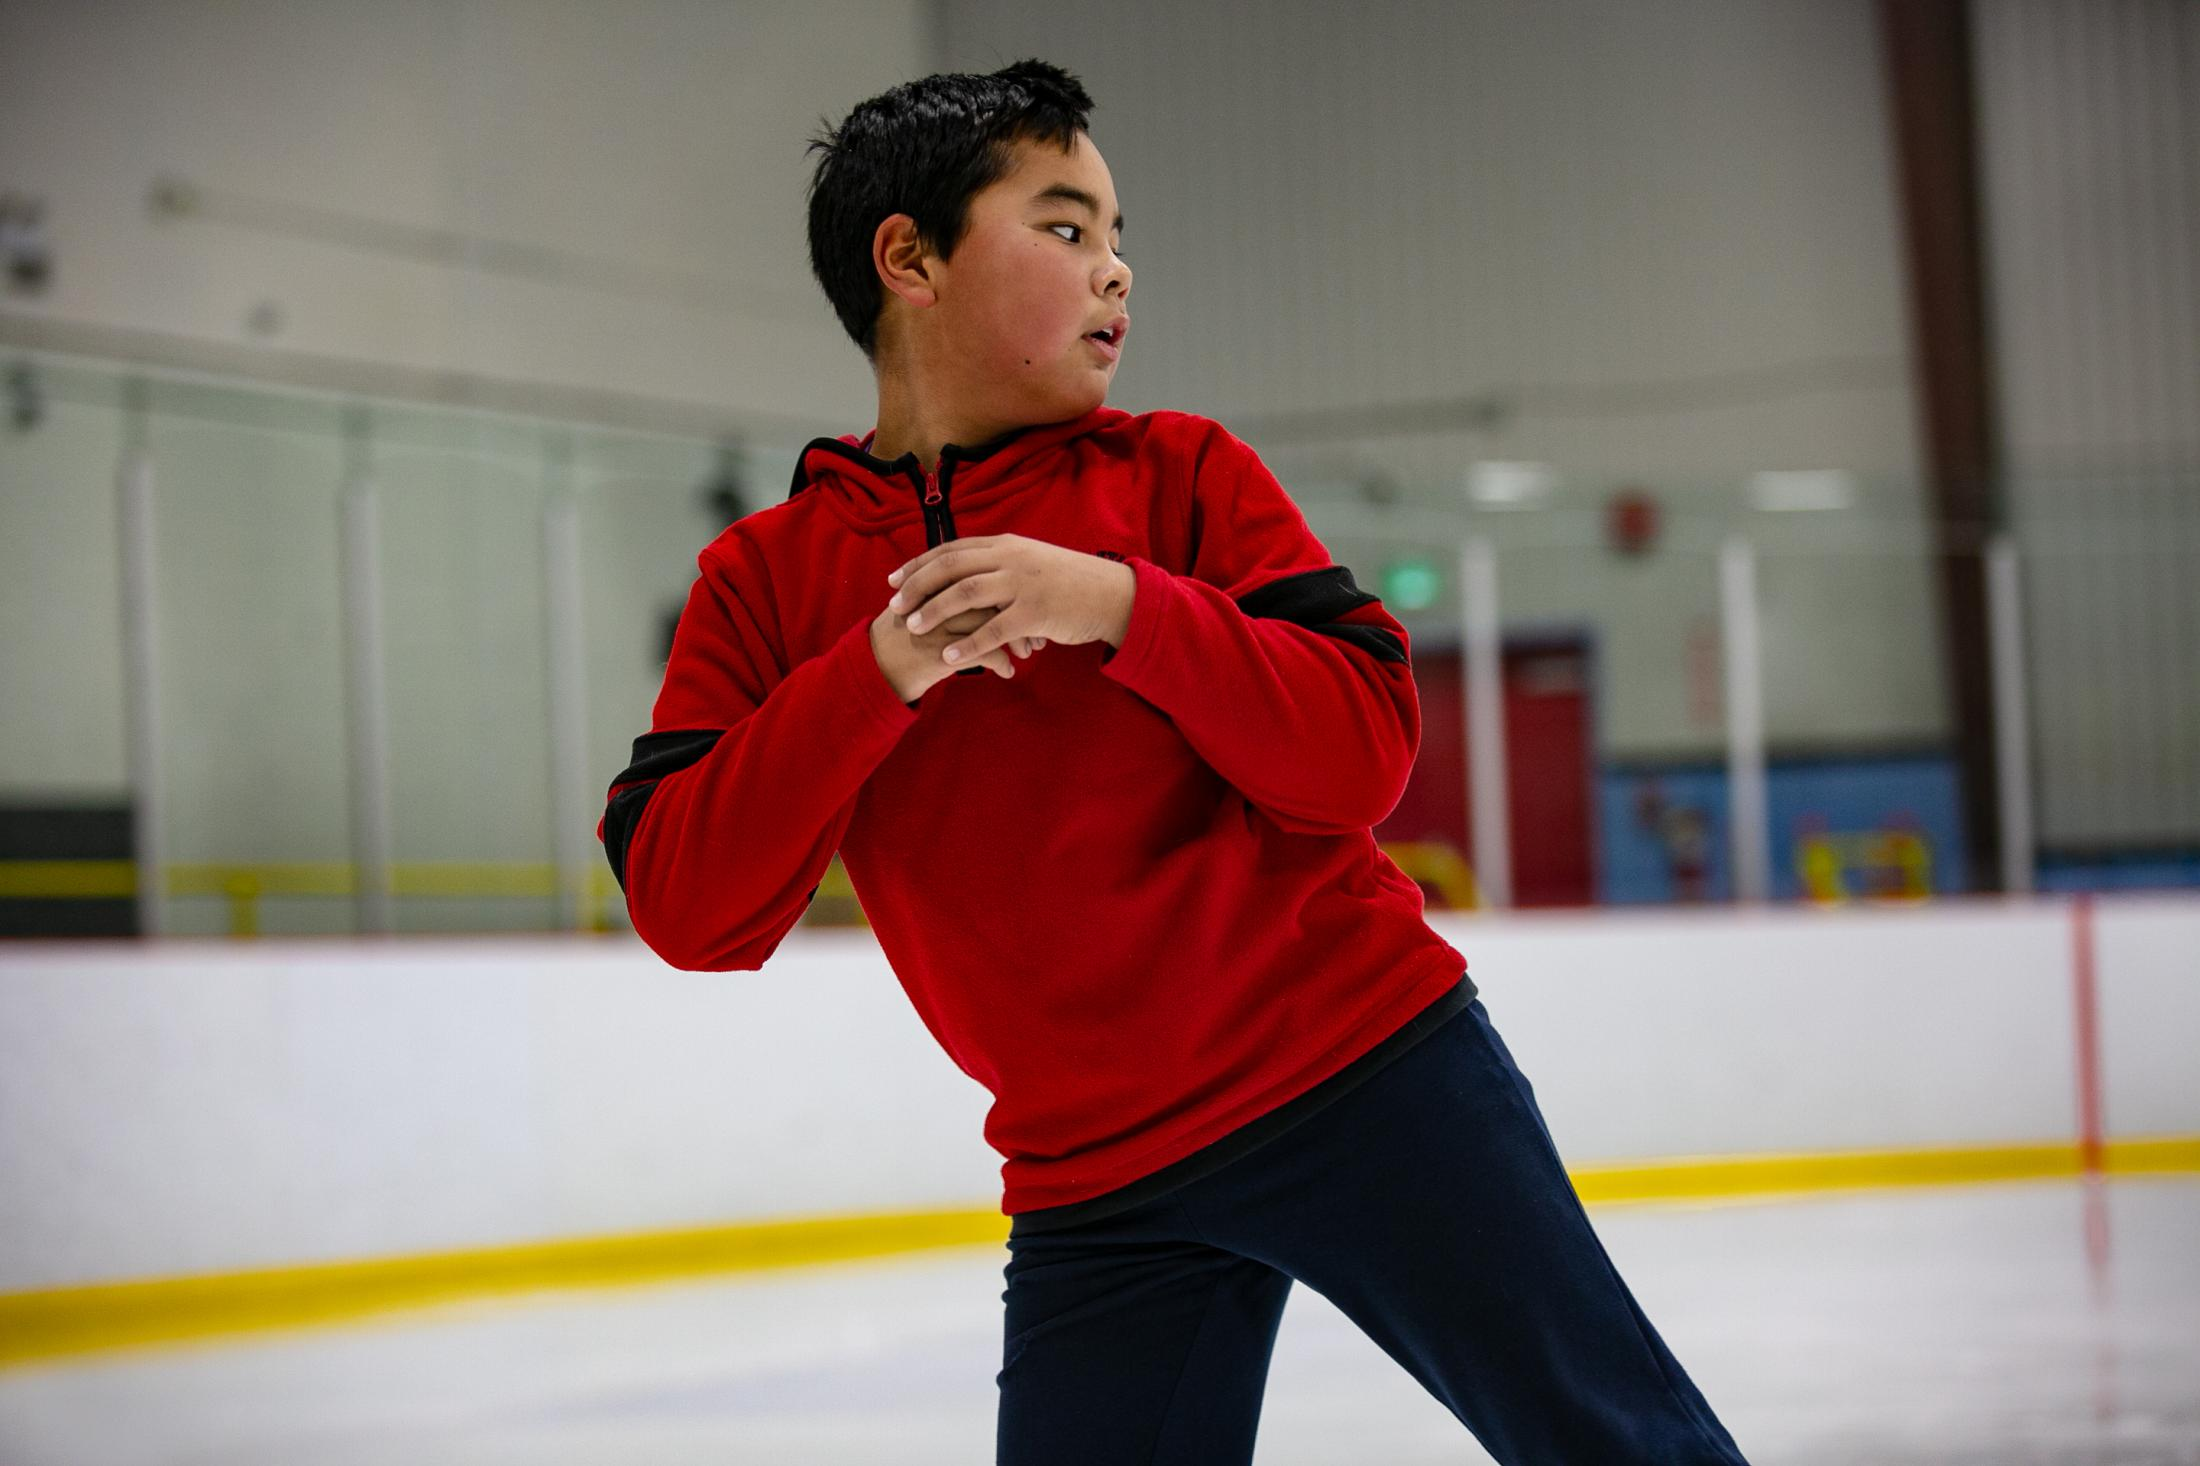 Kaniq Allerton takes part in figure skating practice. Kaniq and his sister, Béatrice, have been figure skating for a few years. During practice at the ice rink in Iqaluit, Kaniq uses the same focus and confidence he has when on the land.